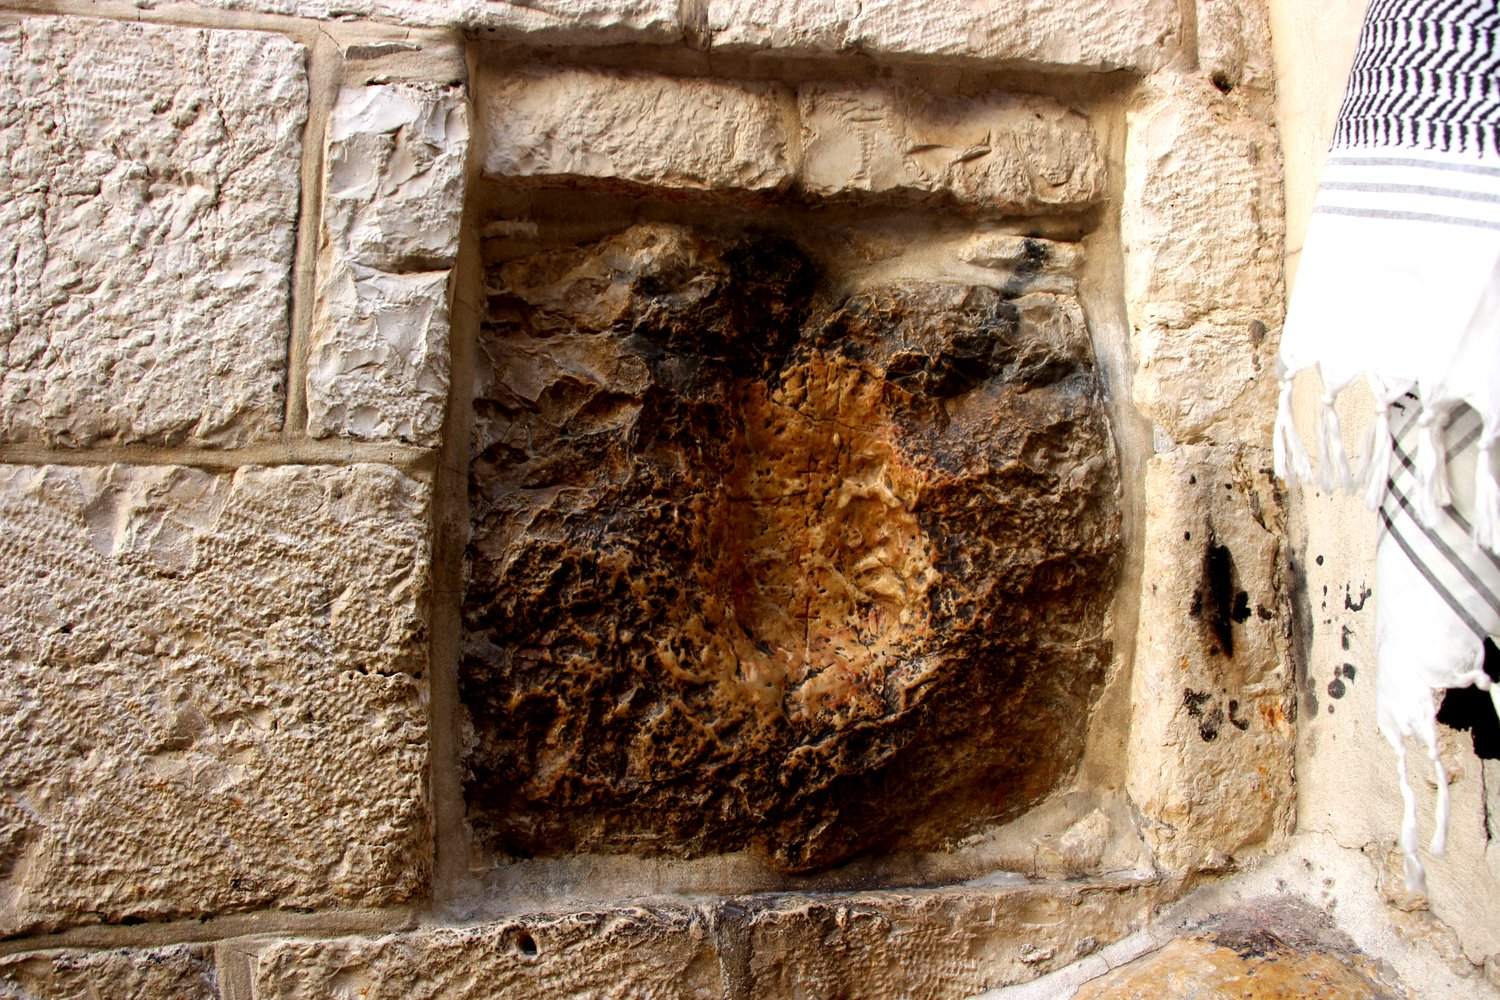 Where Jesus laid his hand to rest.